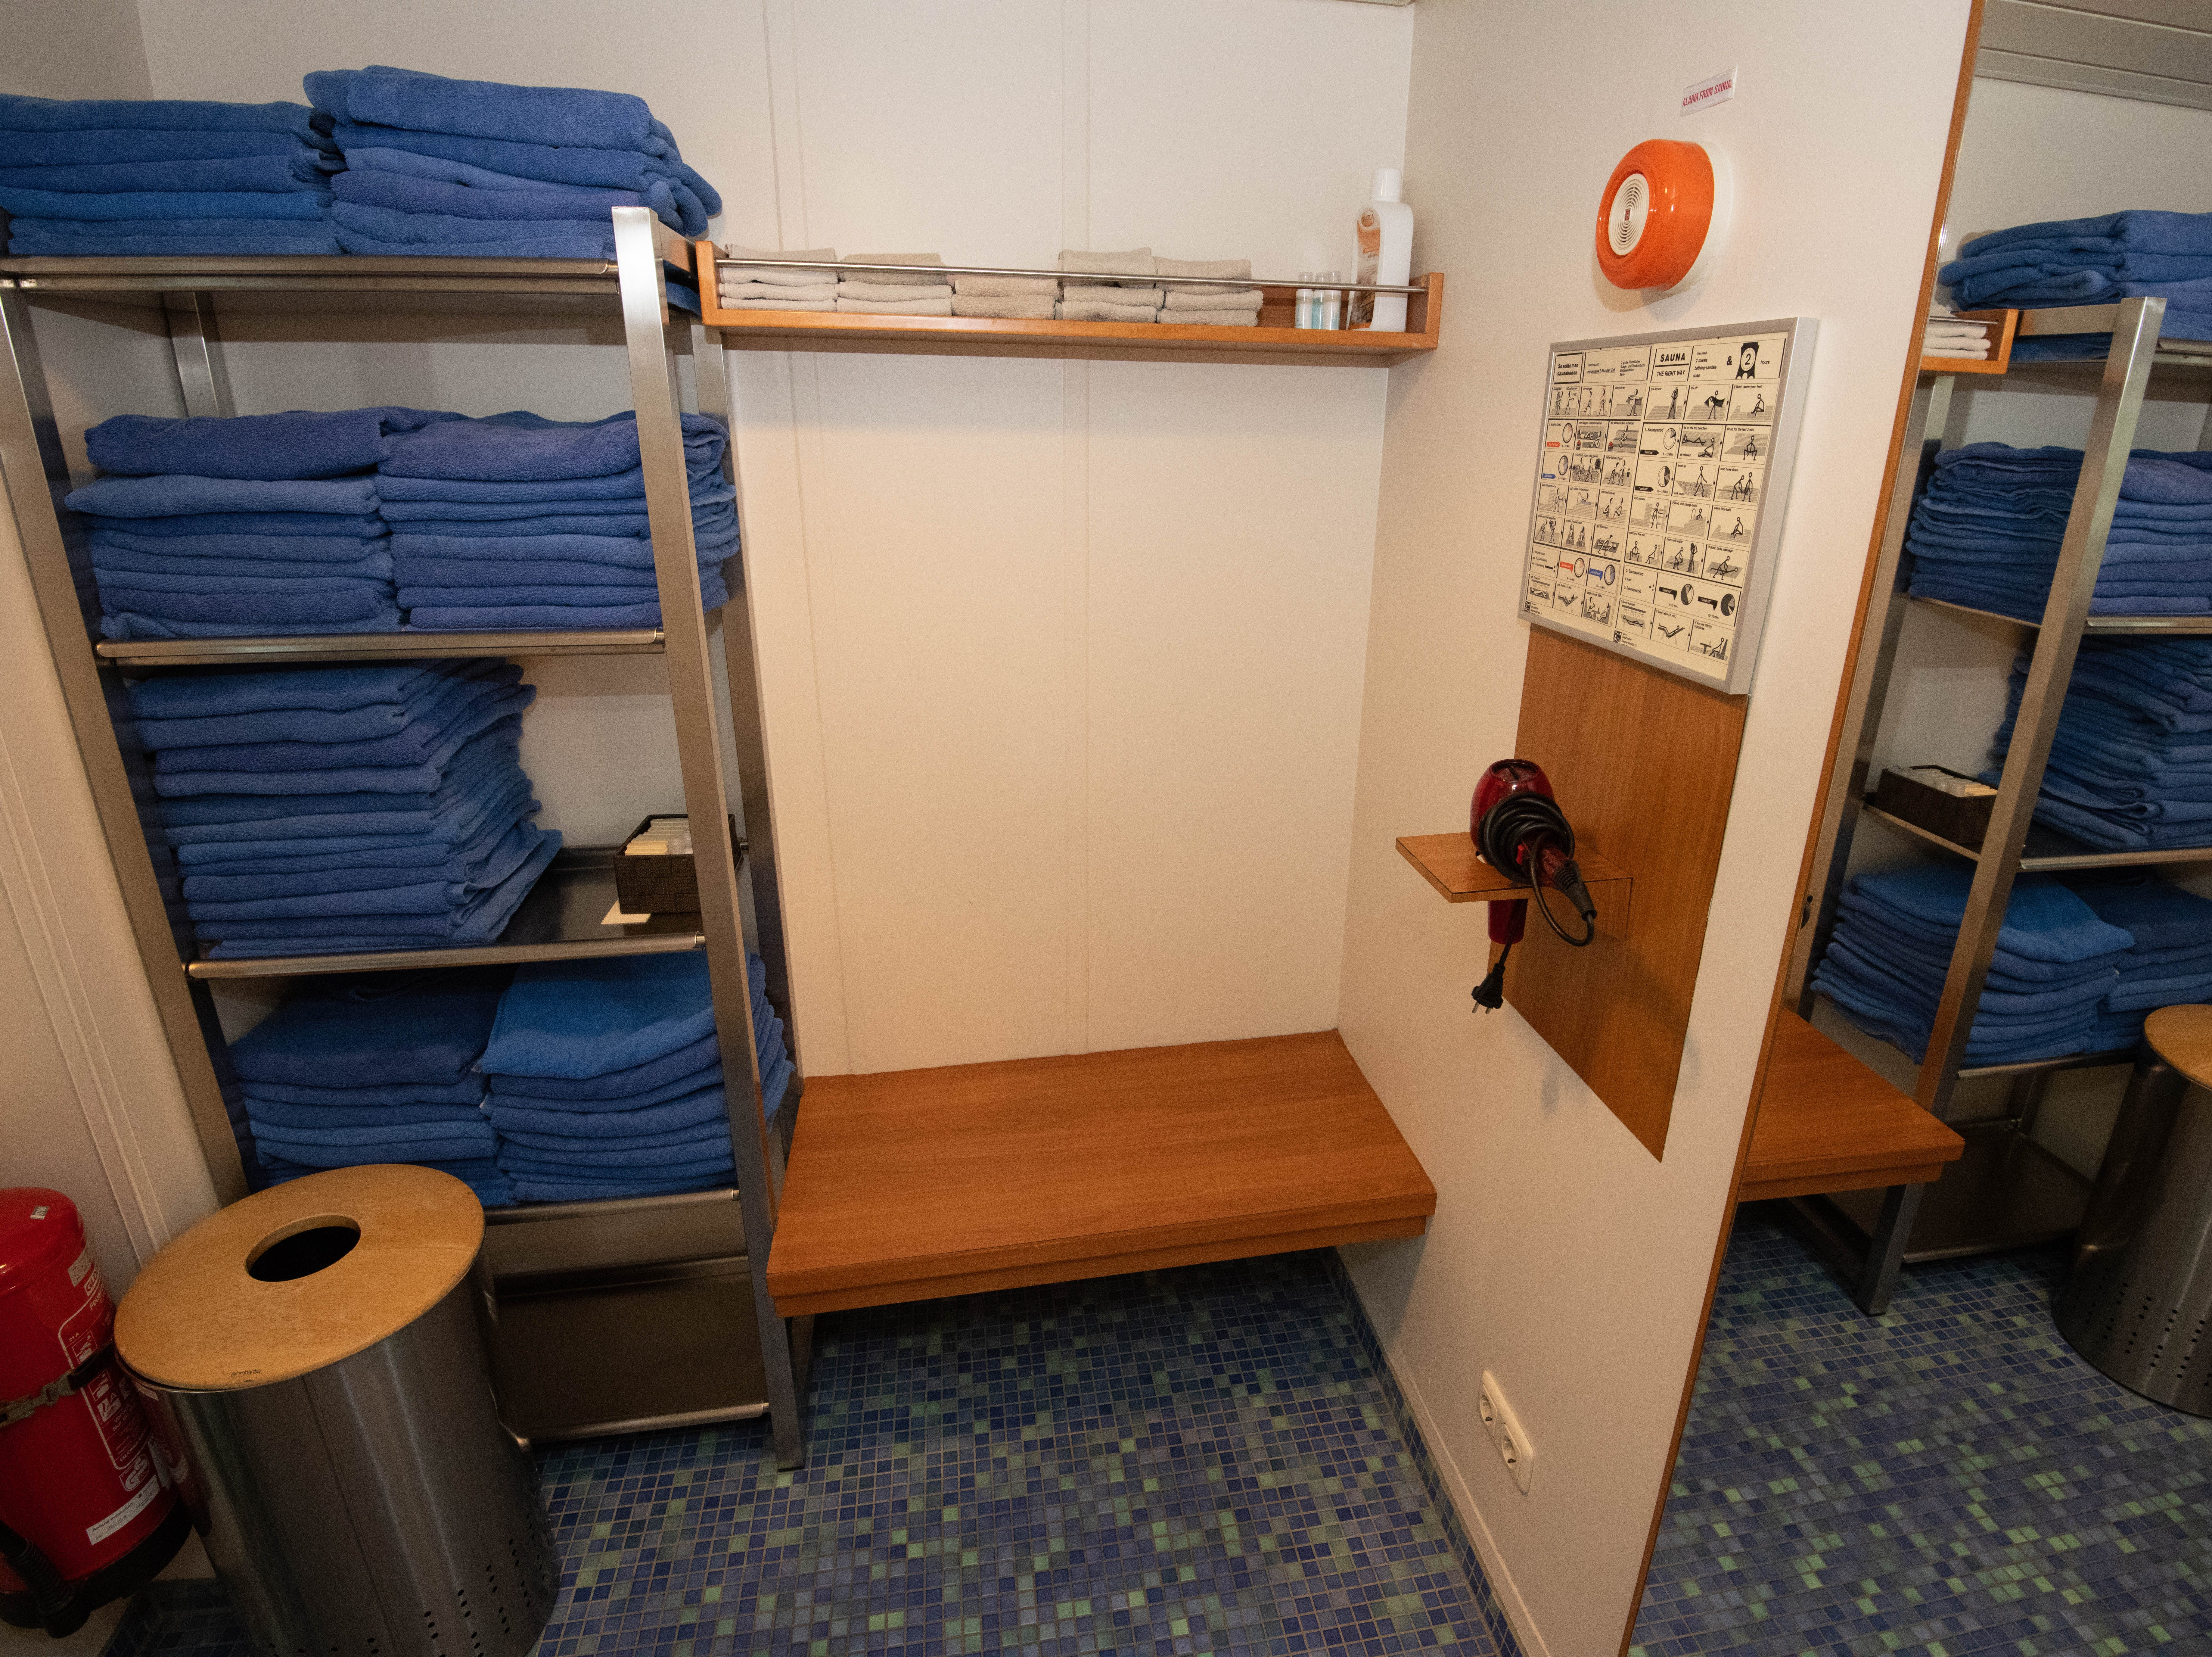 A small changing area in the sauna area.